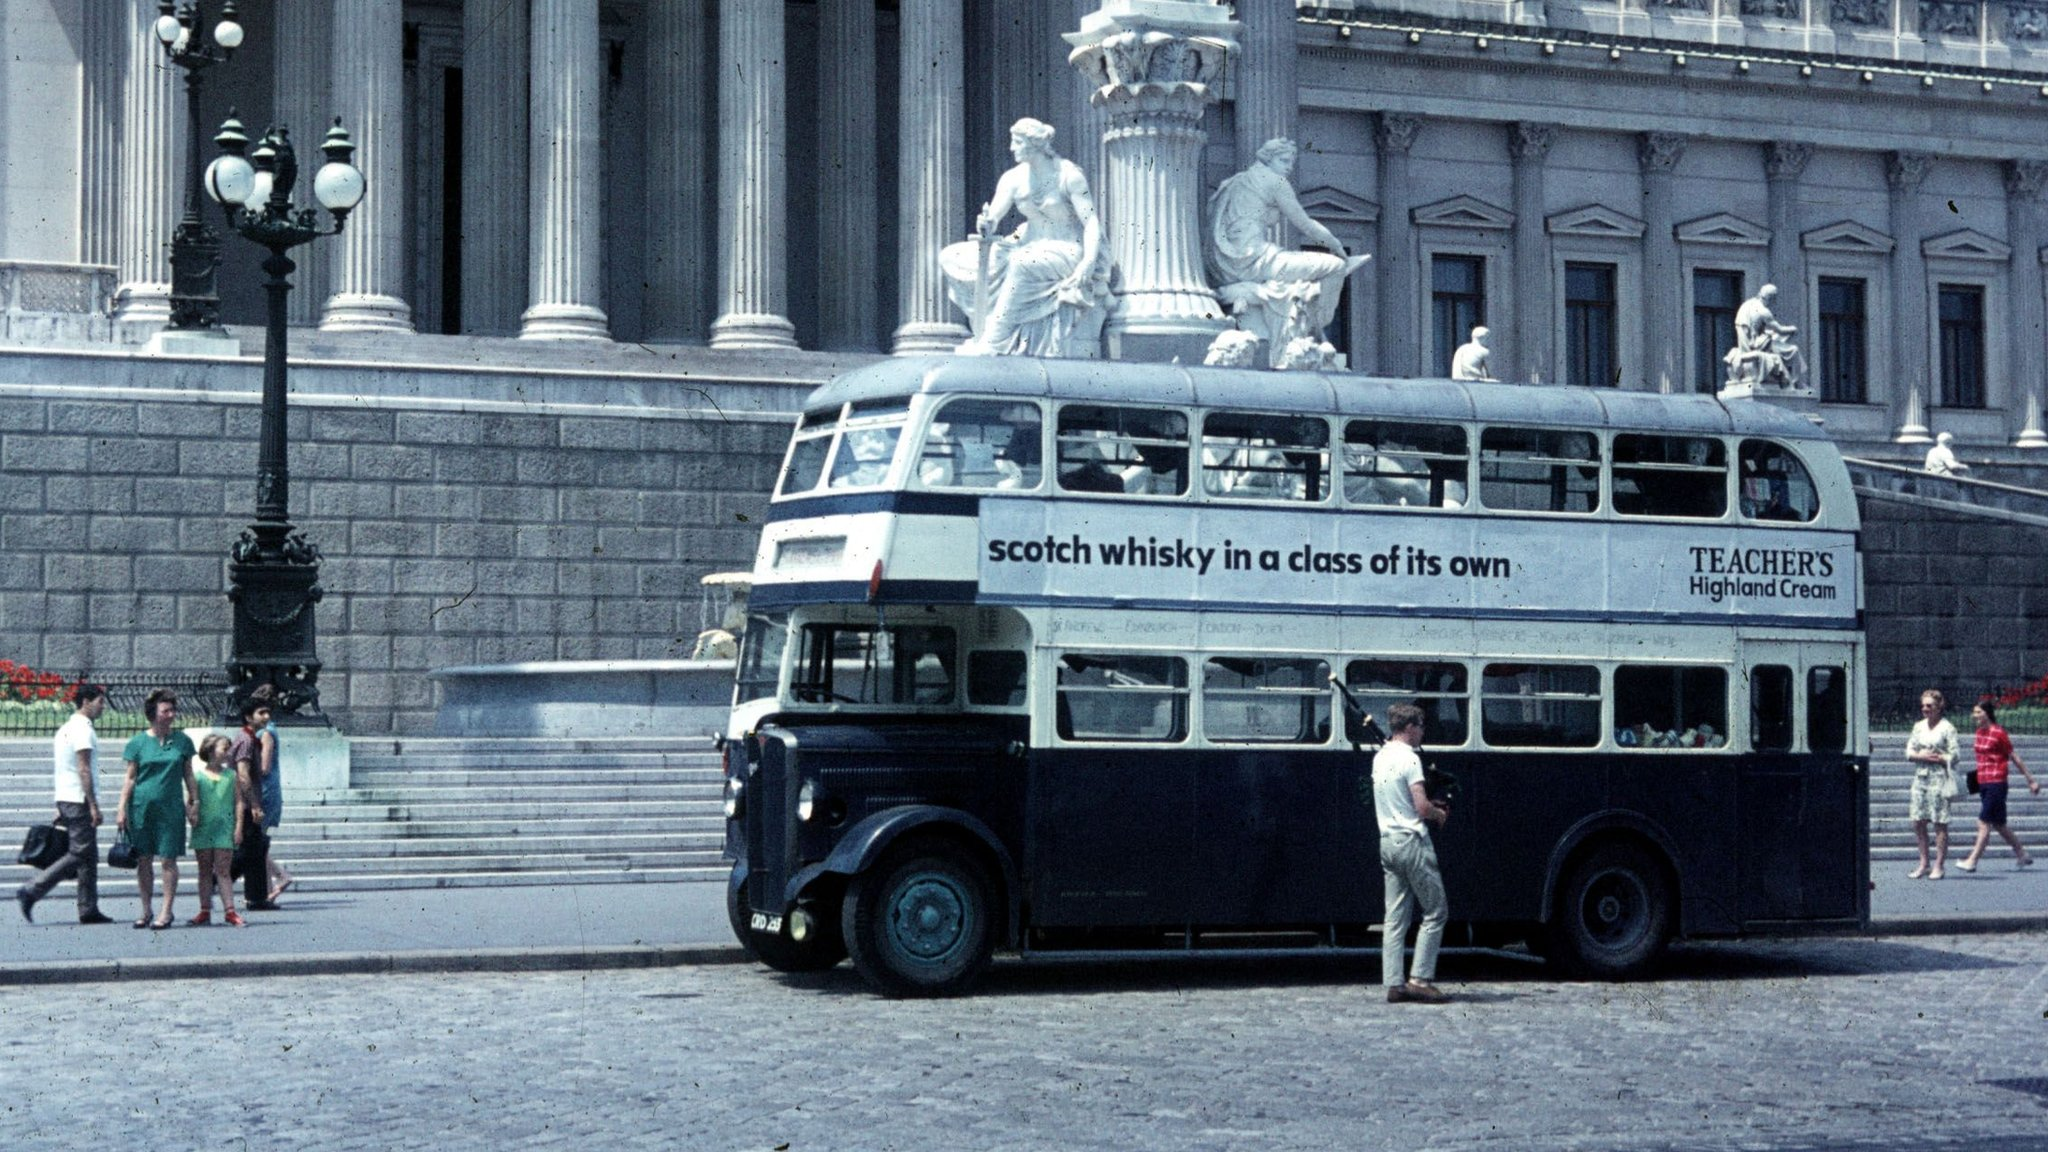 The bus in Vienna by the parliament building on the Dr Karl Renner Ring